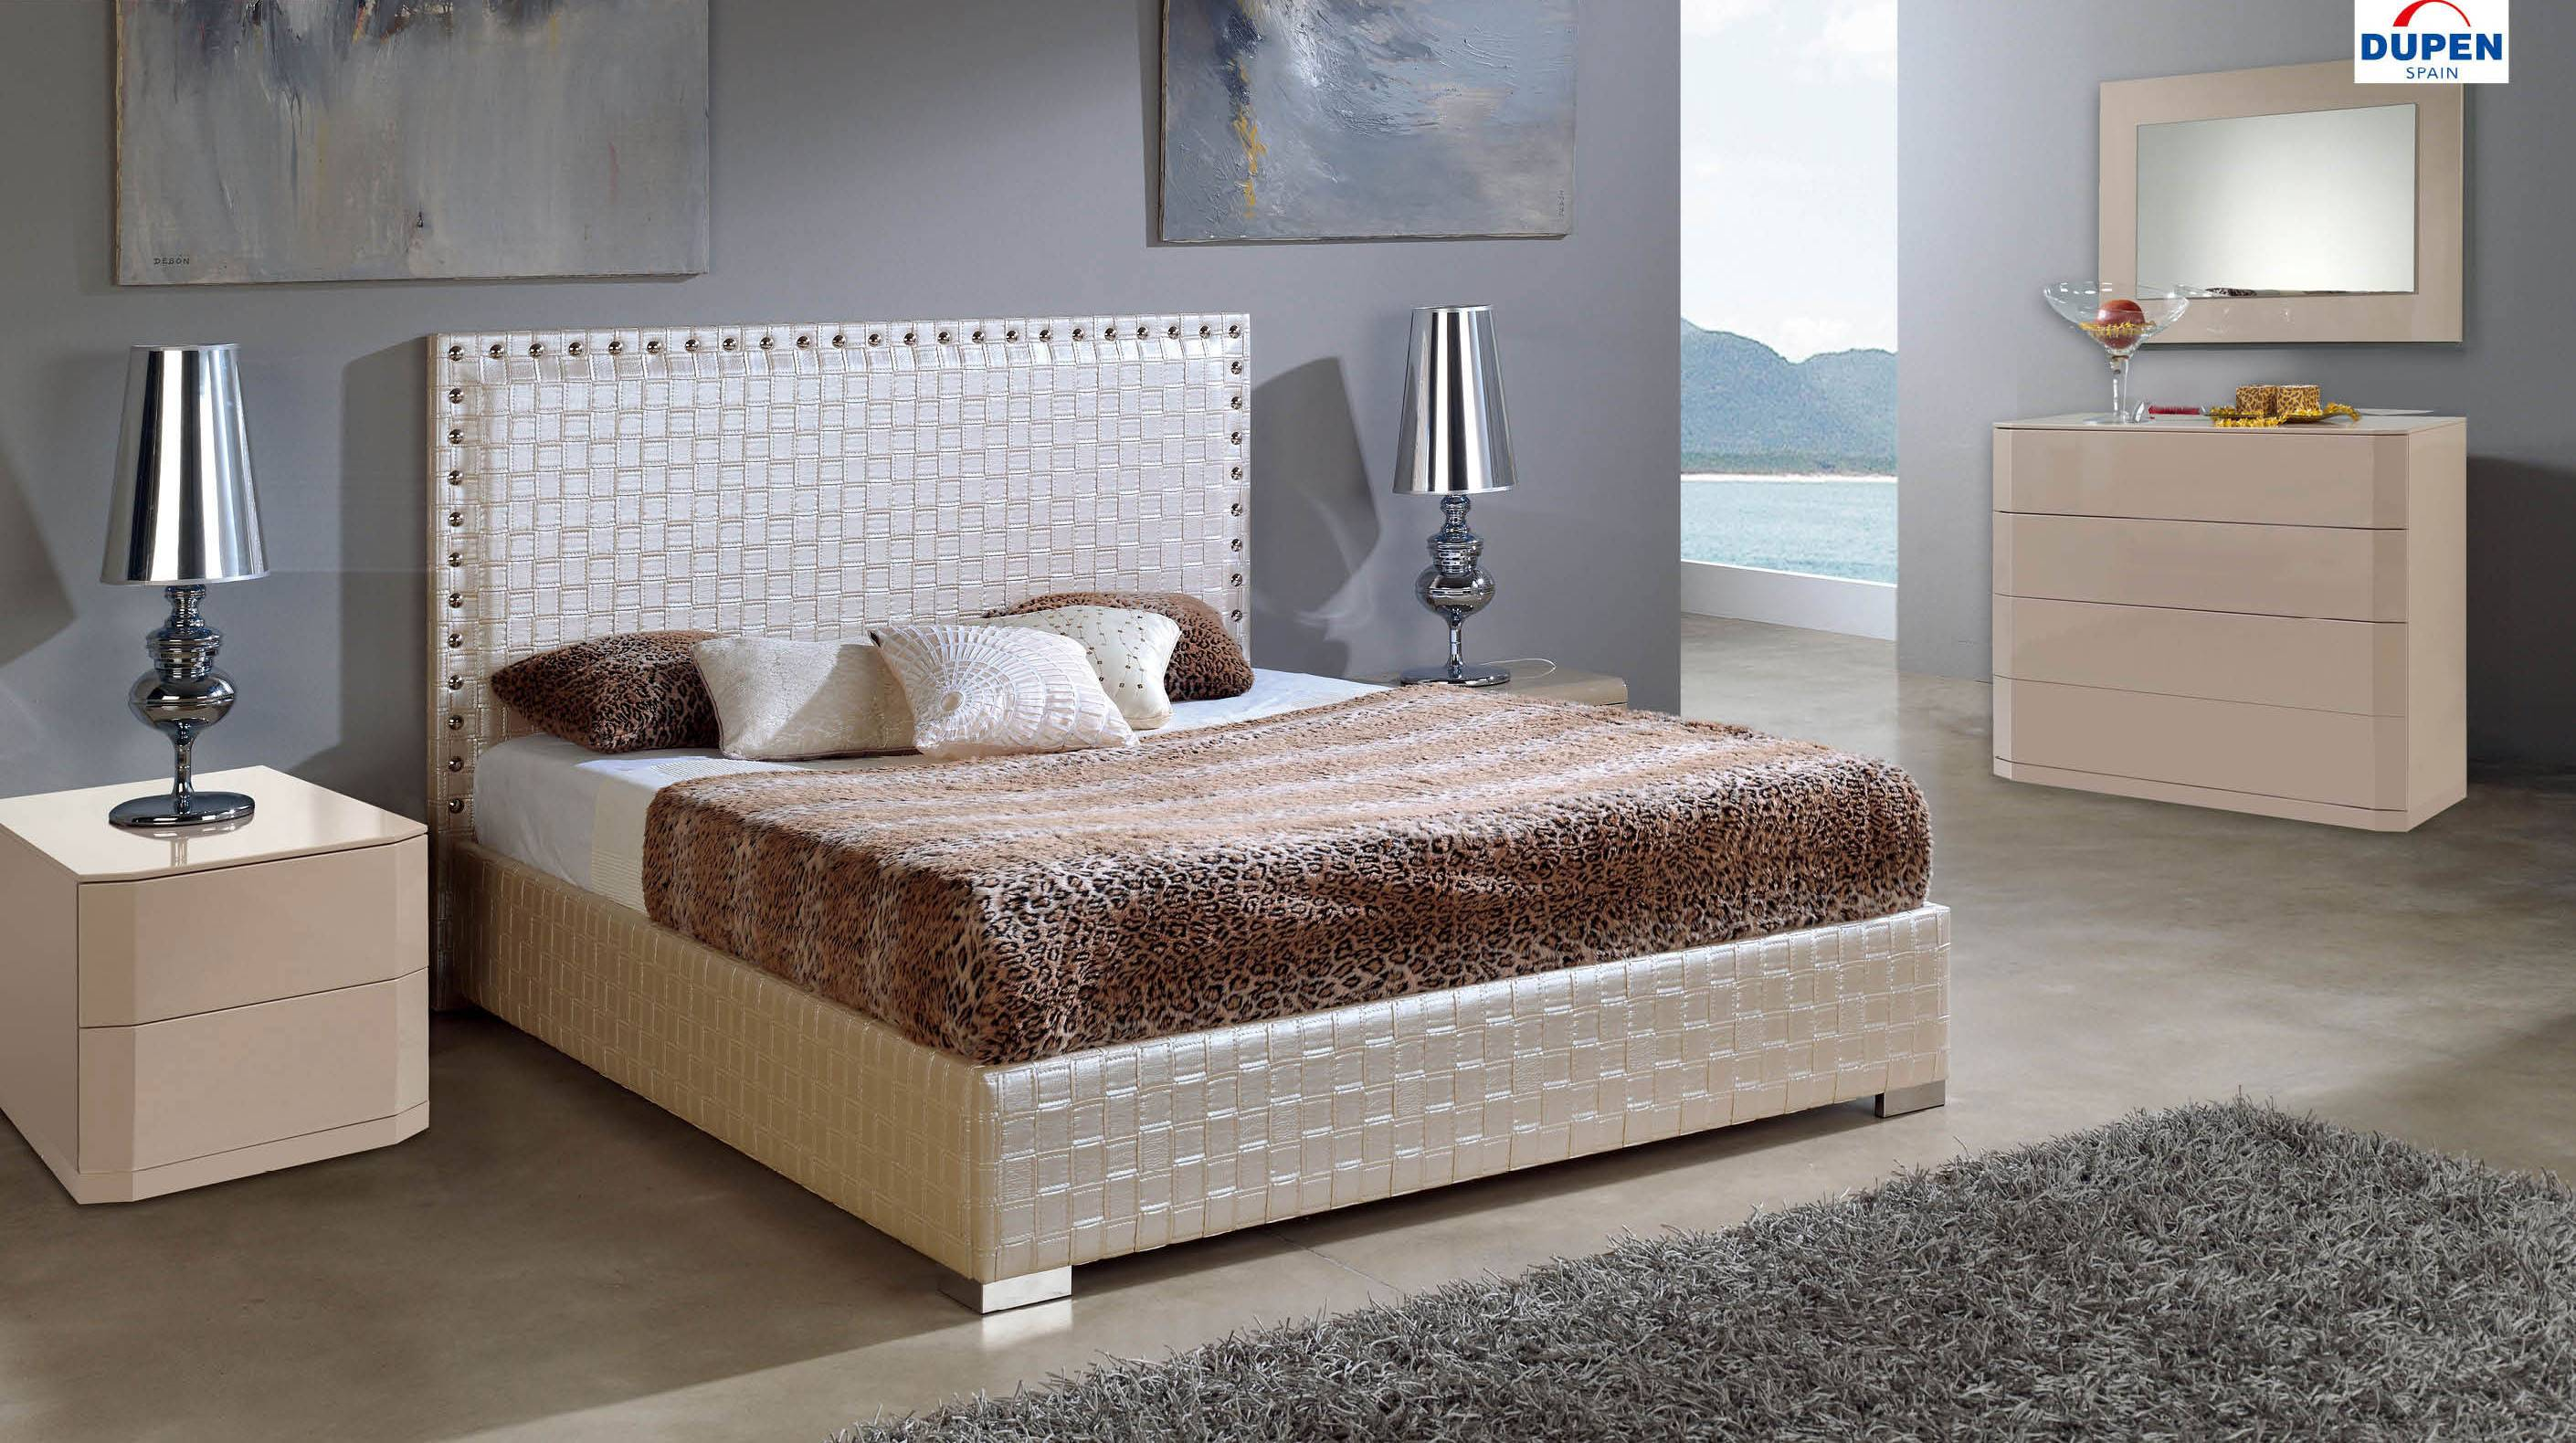 made in spain leather contemporary platform bedroom sets 16395 | woven leather bed made in spain esftrenzado